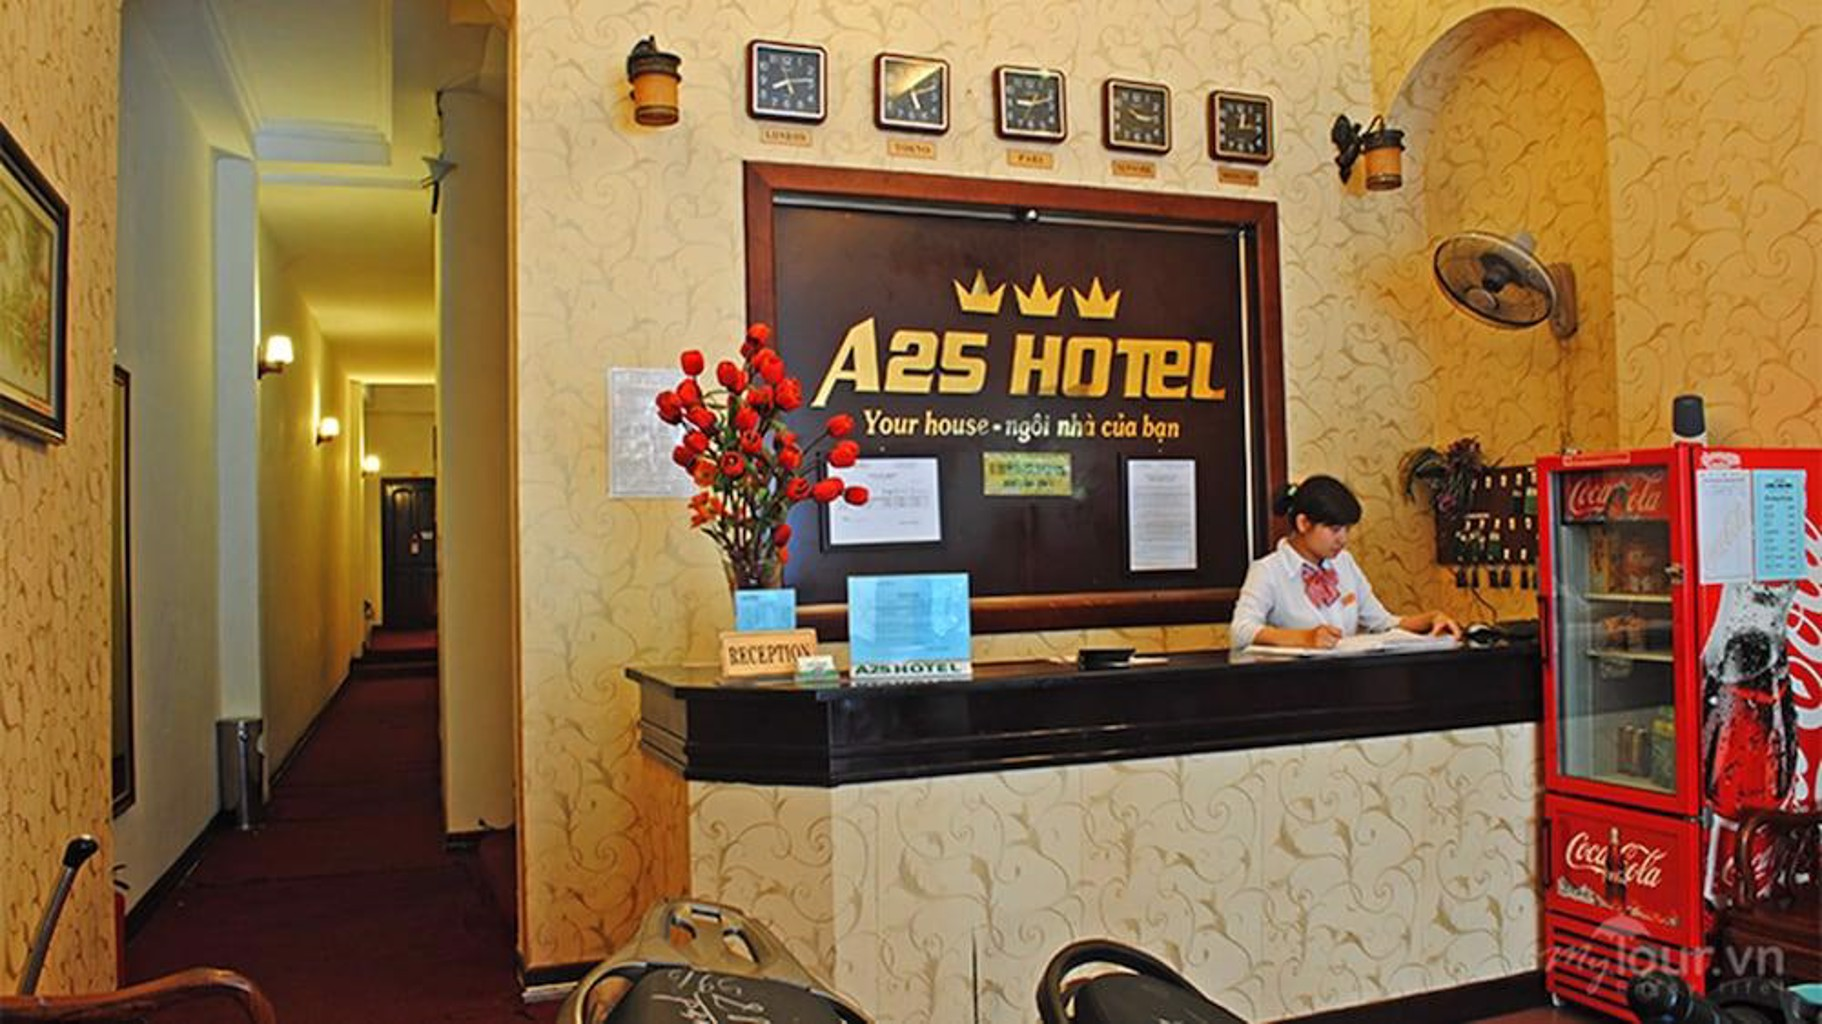 Gallery image of A25 Hotel Hang Thiec